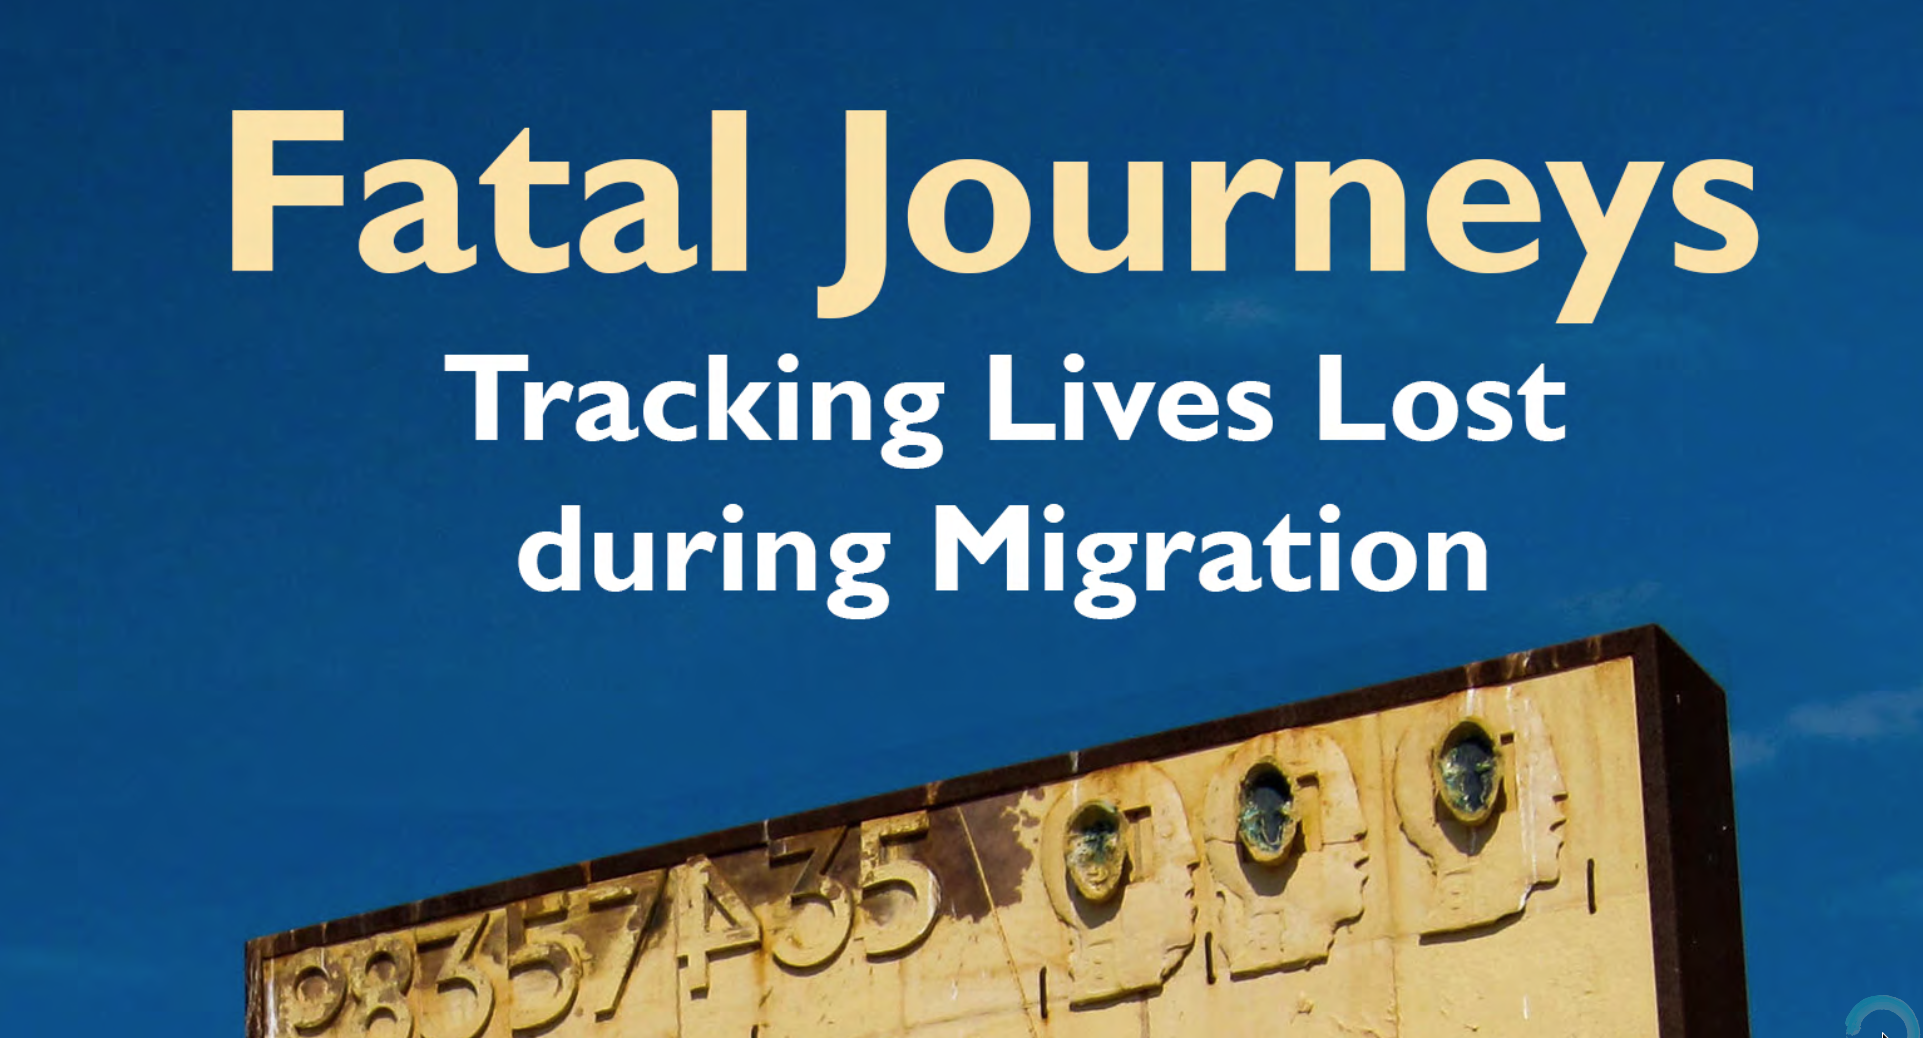 OIM — Fatal Journeys — VOLUME 1 — Tracking Lives Lost during Migration (Edited by Tara Brian and Frank Laczko) —2015